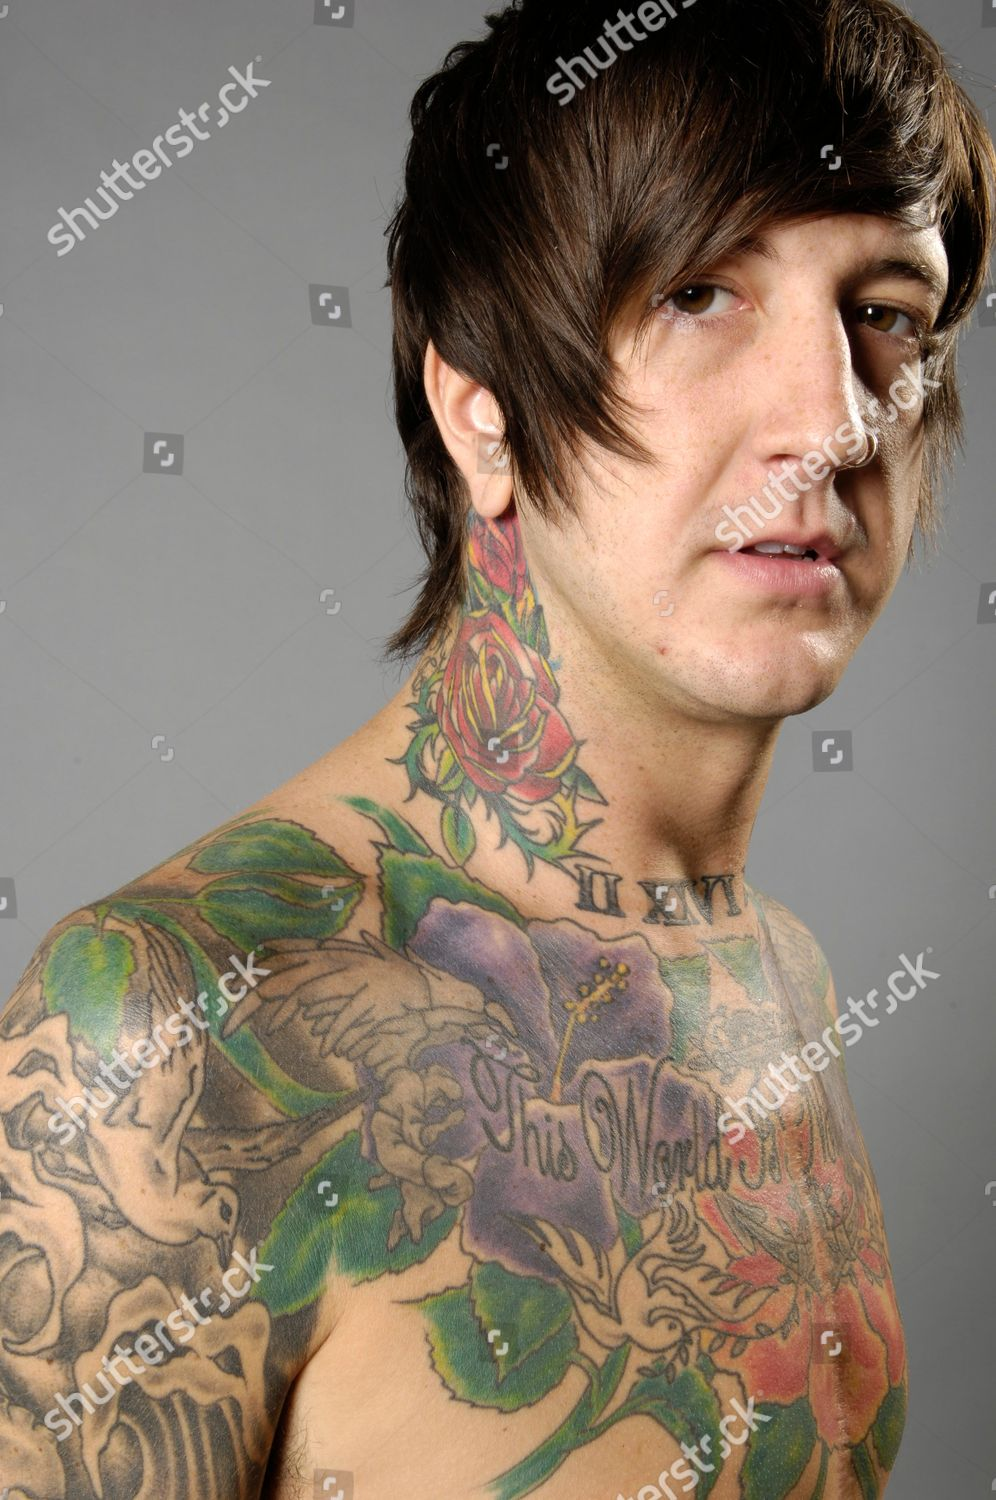 6458a80f2a8ca Austin Carlile Tattoo Portrait Shoot Stock Image by Kevin Nixon for  editorial use, May 3, 2012